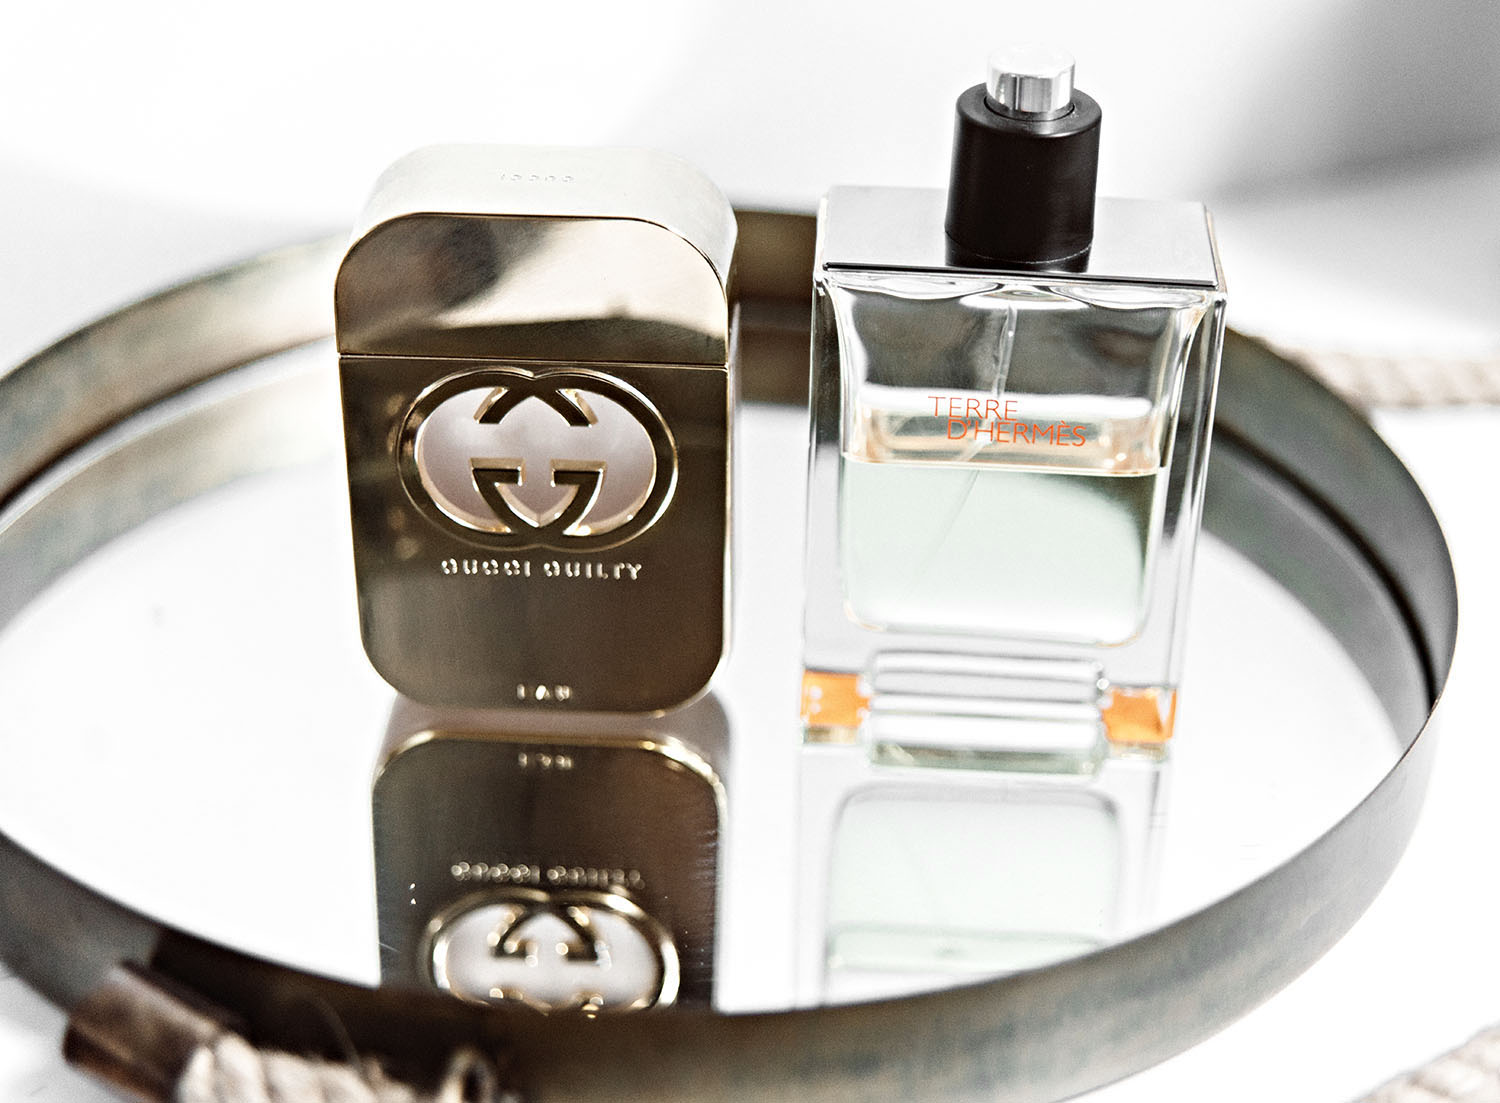 Perfumes for men: Gucci Guilty for him & Hermes Terre d'Hermes